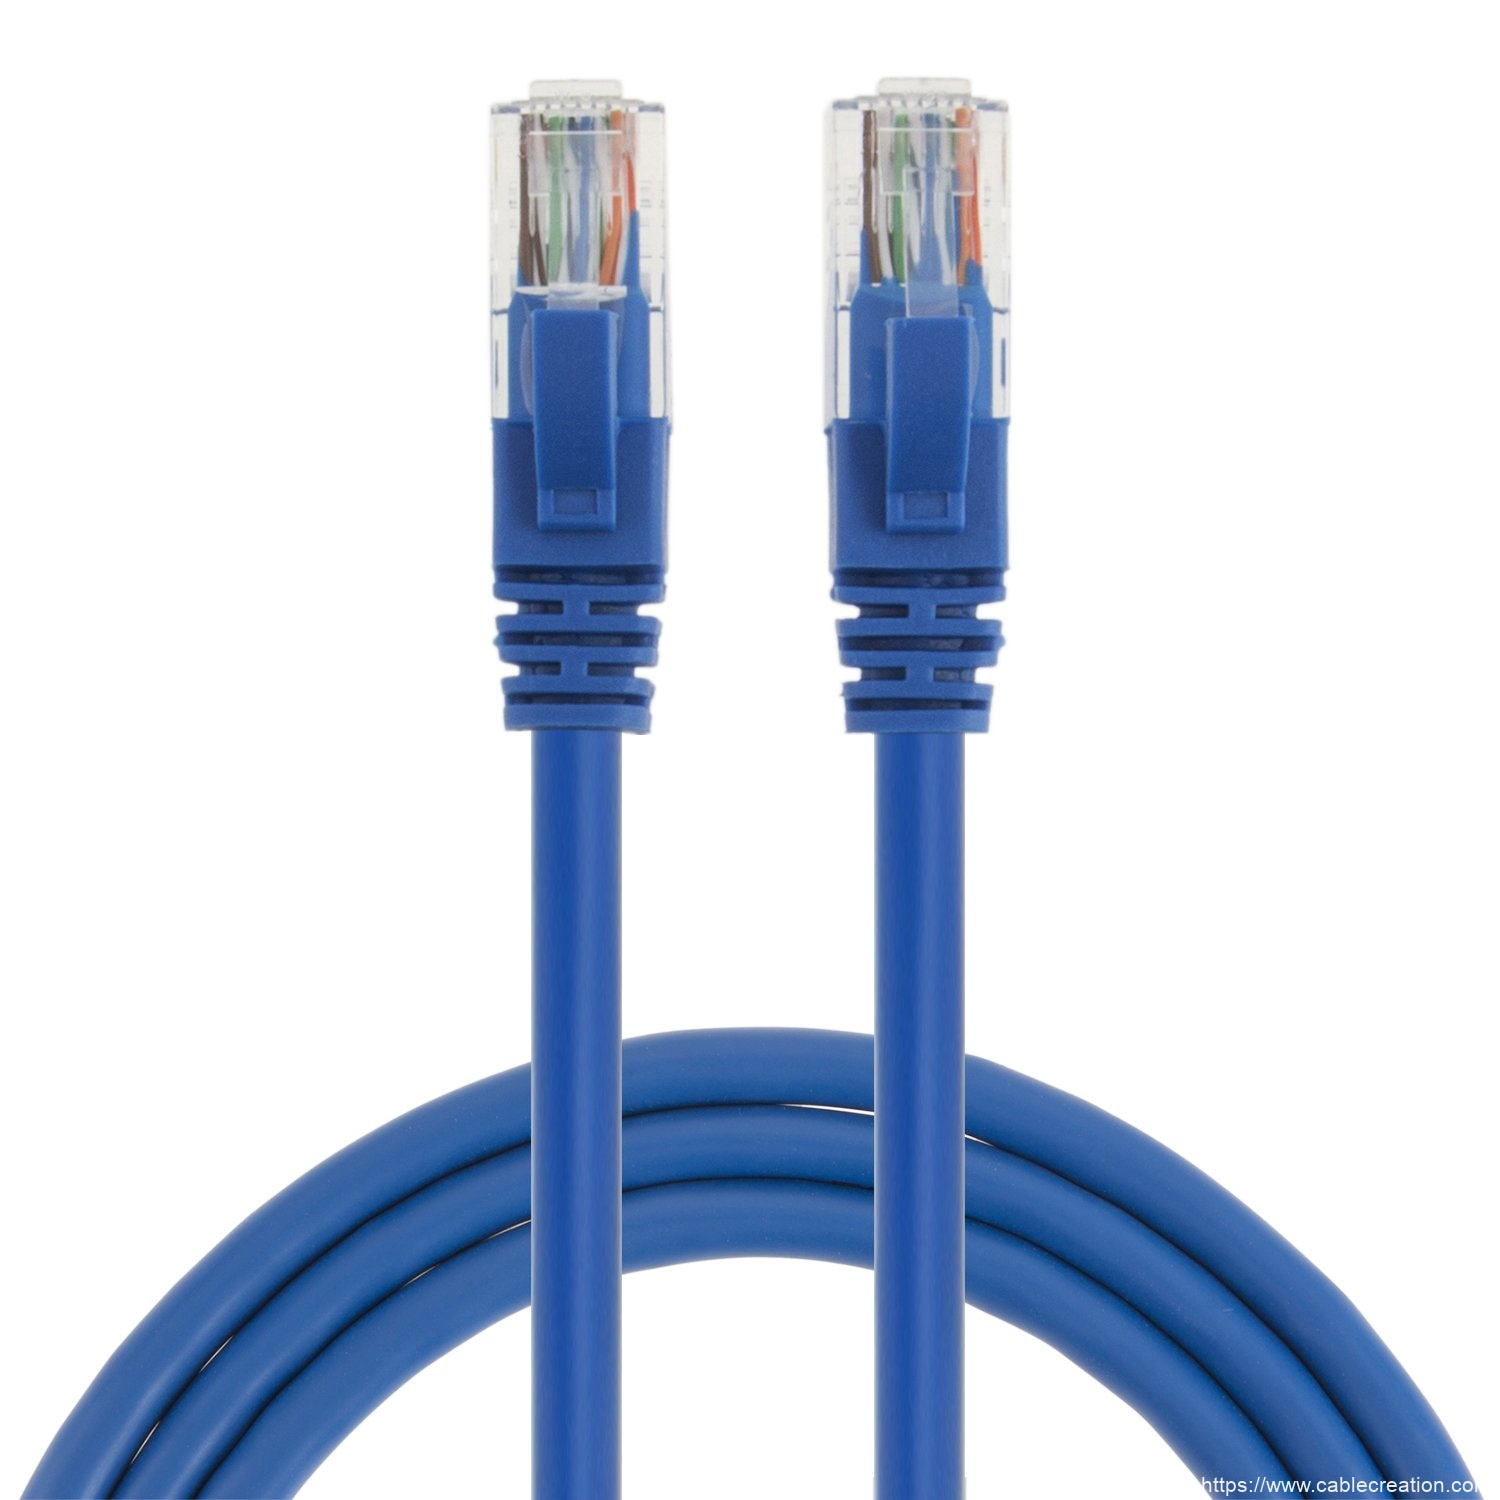 Good quality Network Cable Left Angel - Cat 6 Ethernet Cable 75 Feet/22.9 Meters, #CL0141 – CableCreation